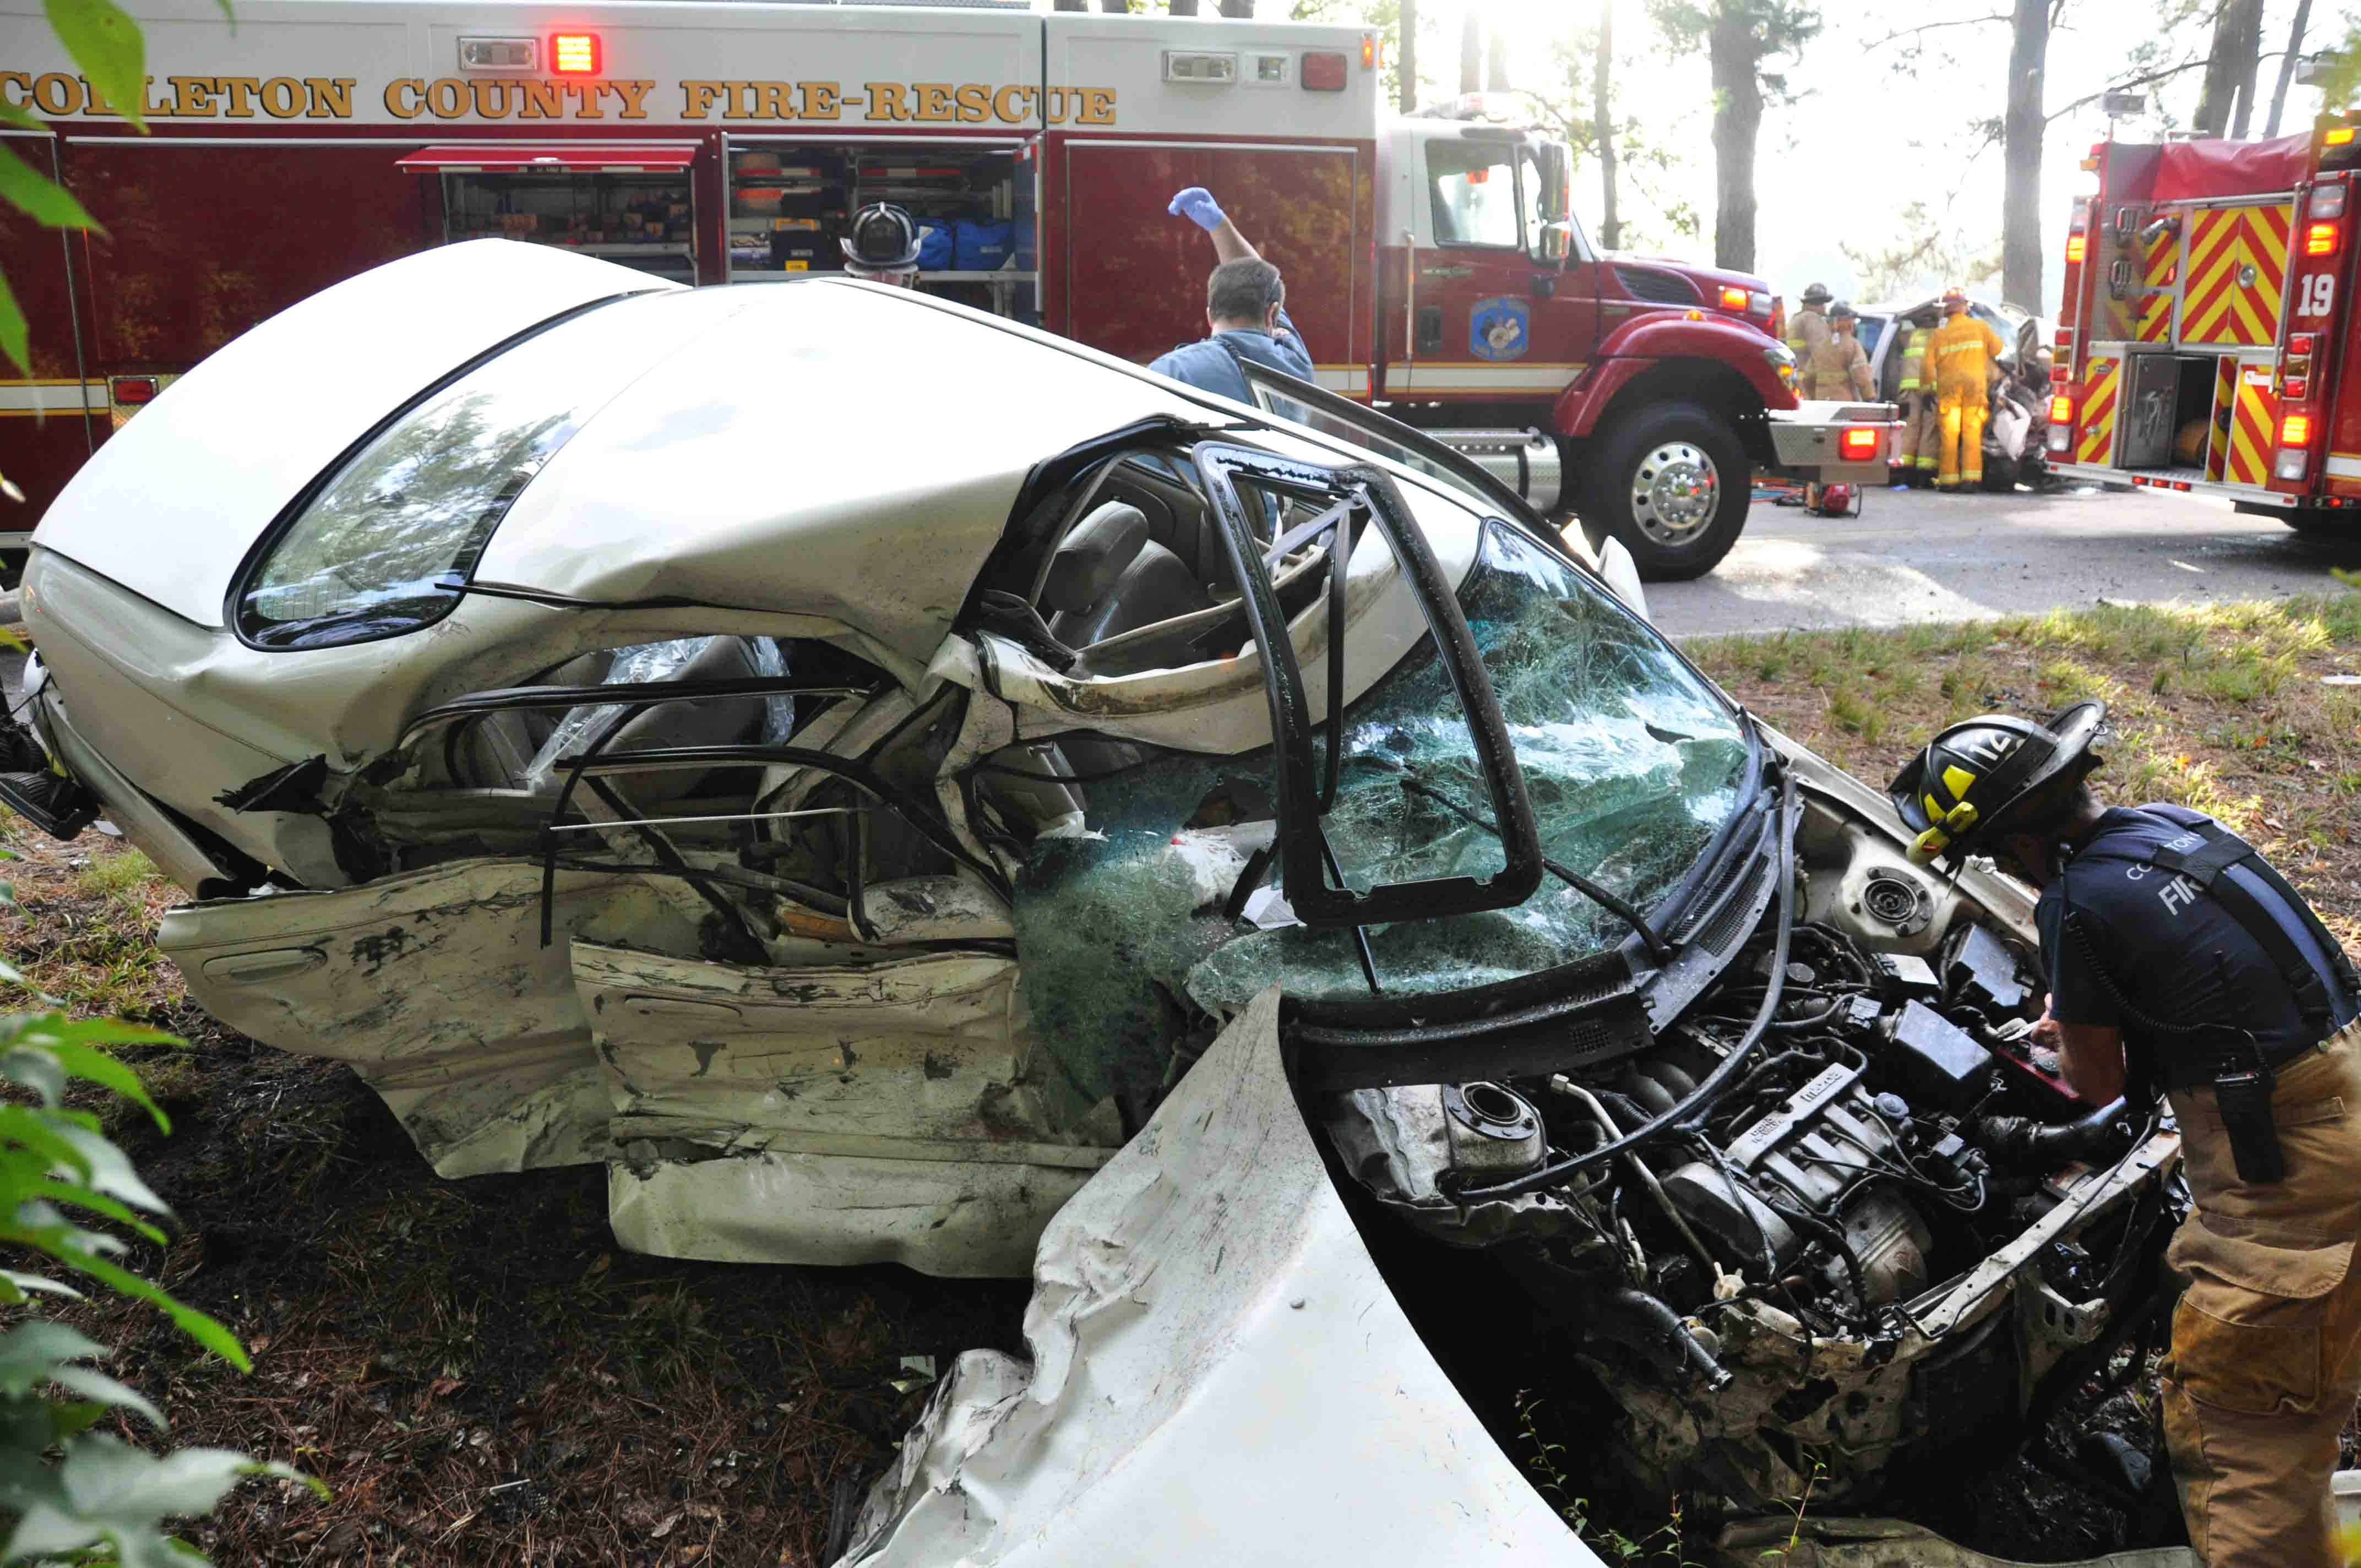 09/27/2011 Fatal MVC with entrapment